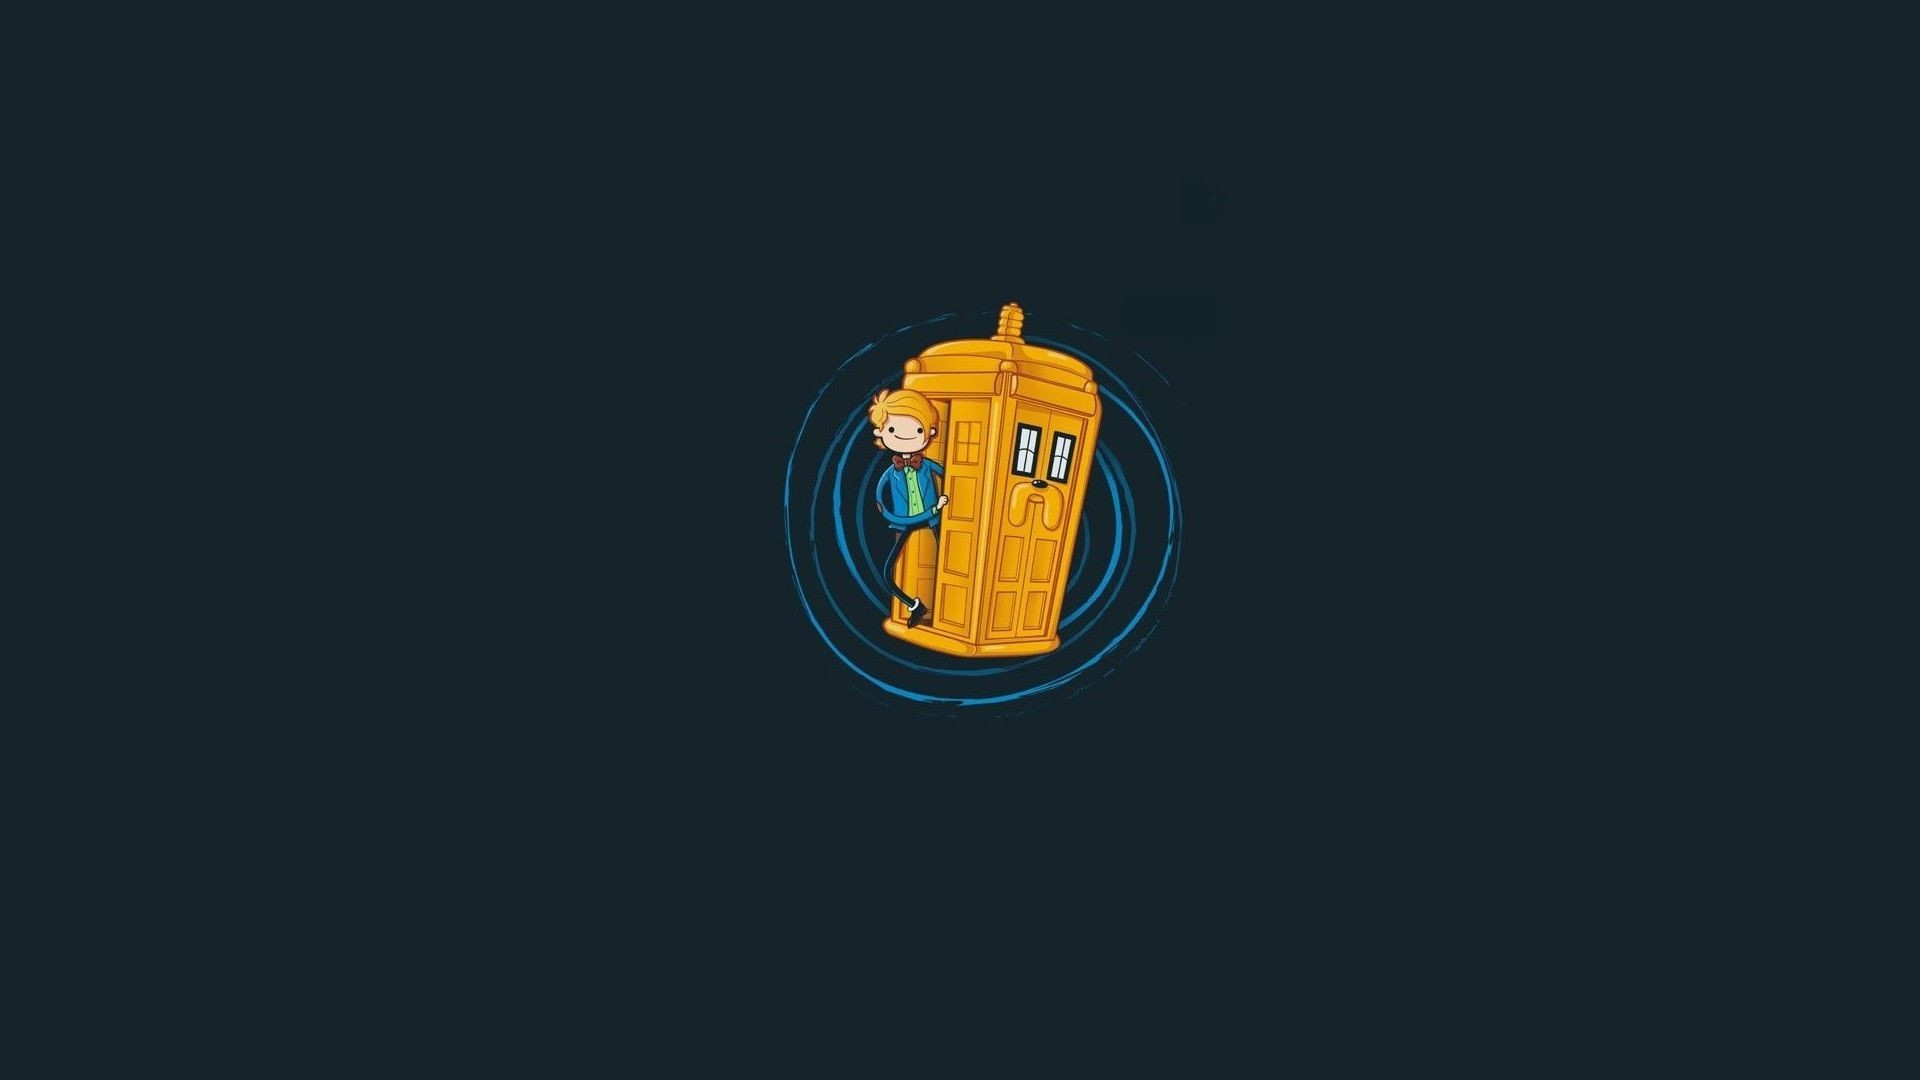 1920x1080 Adventure Time - Doctor Who crossover HD Wallpaper 1920x1080